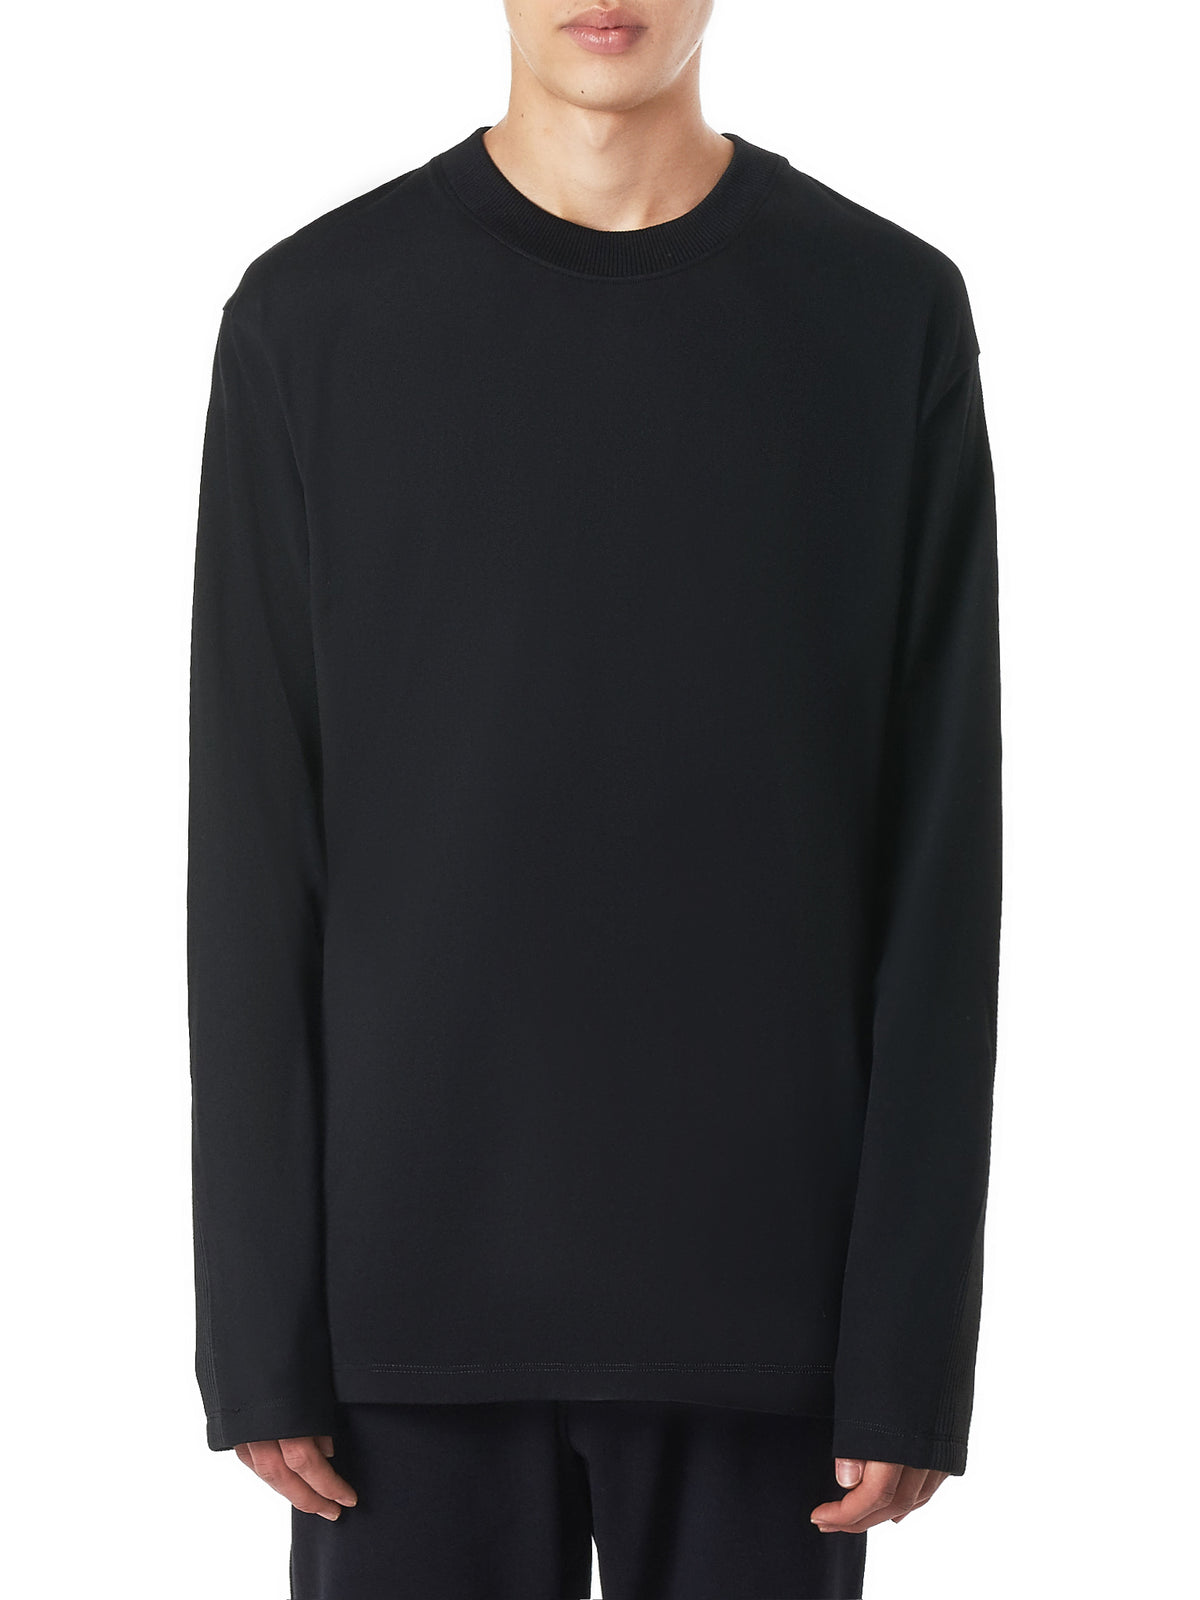 Cornerstone Long-Sleeve Top - Hlorenzo Front